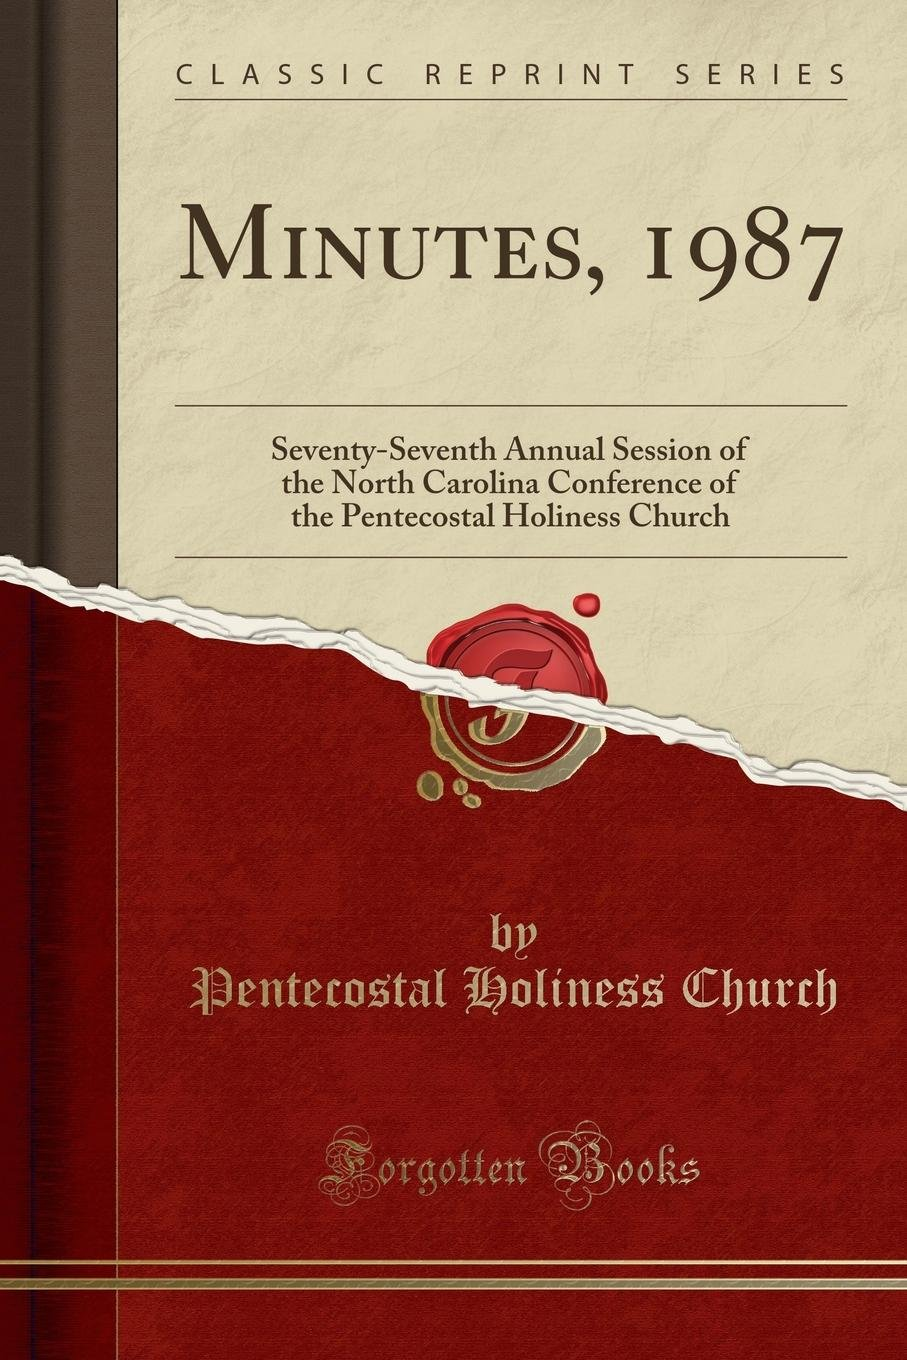 Minutes, 1987: Seventy-Seventh Annual Session of the North Carolina Conference of the Pentecostal Holiness Church (Classic Reprint) pdf epub